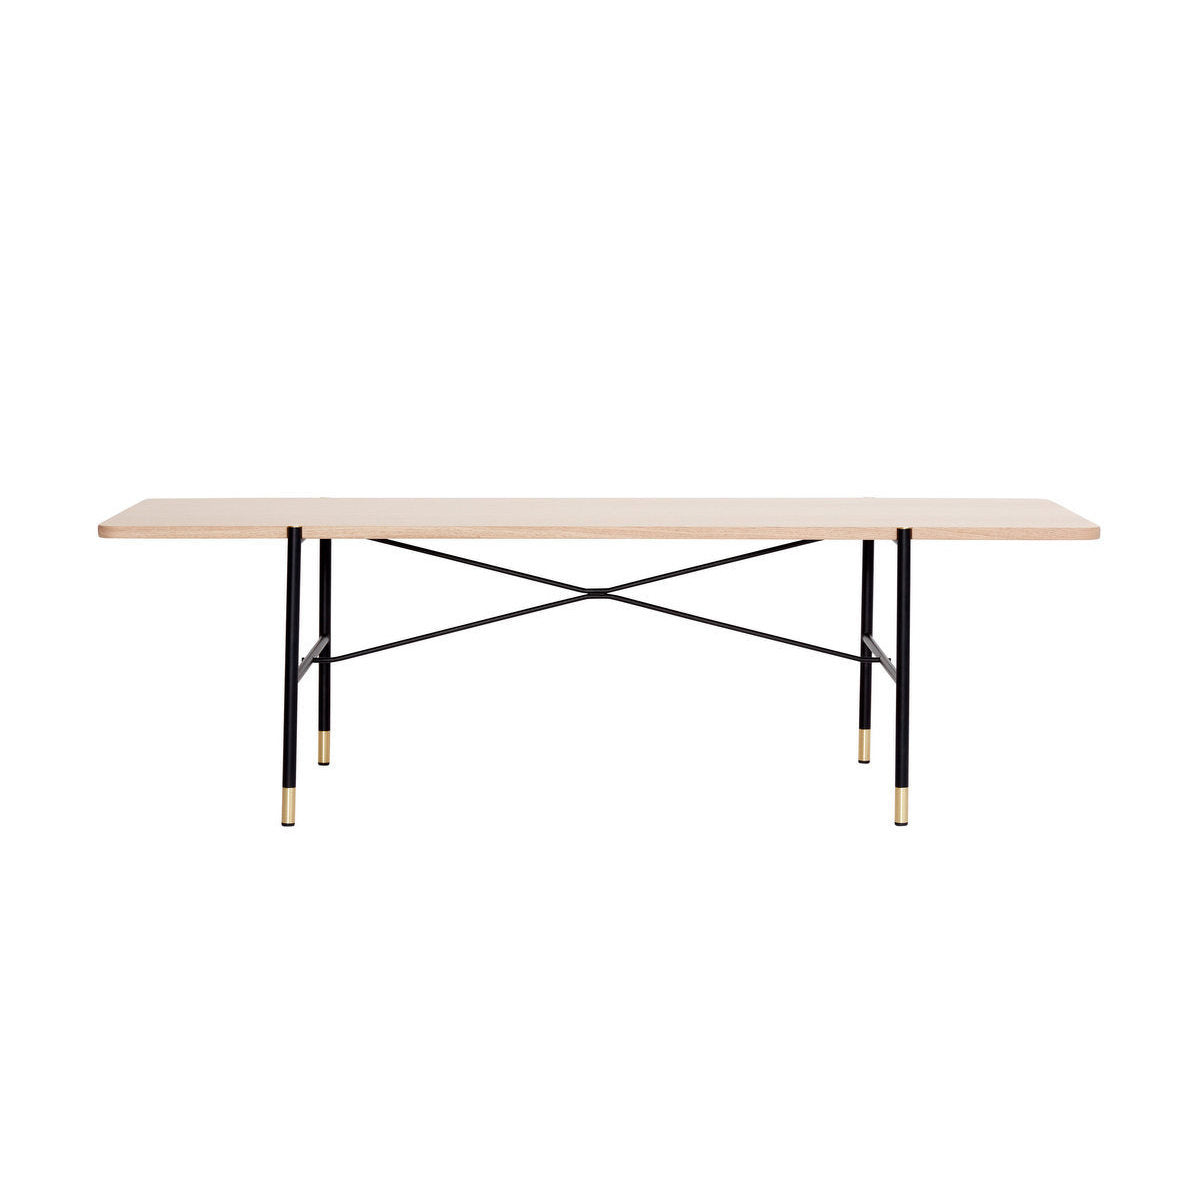 Andersen Furniture - C6 Coffee Table - Coffee Table